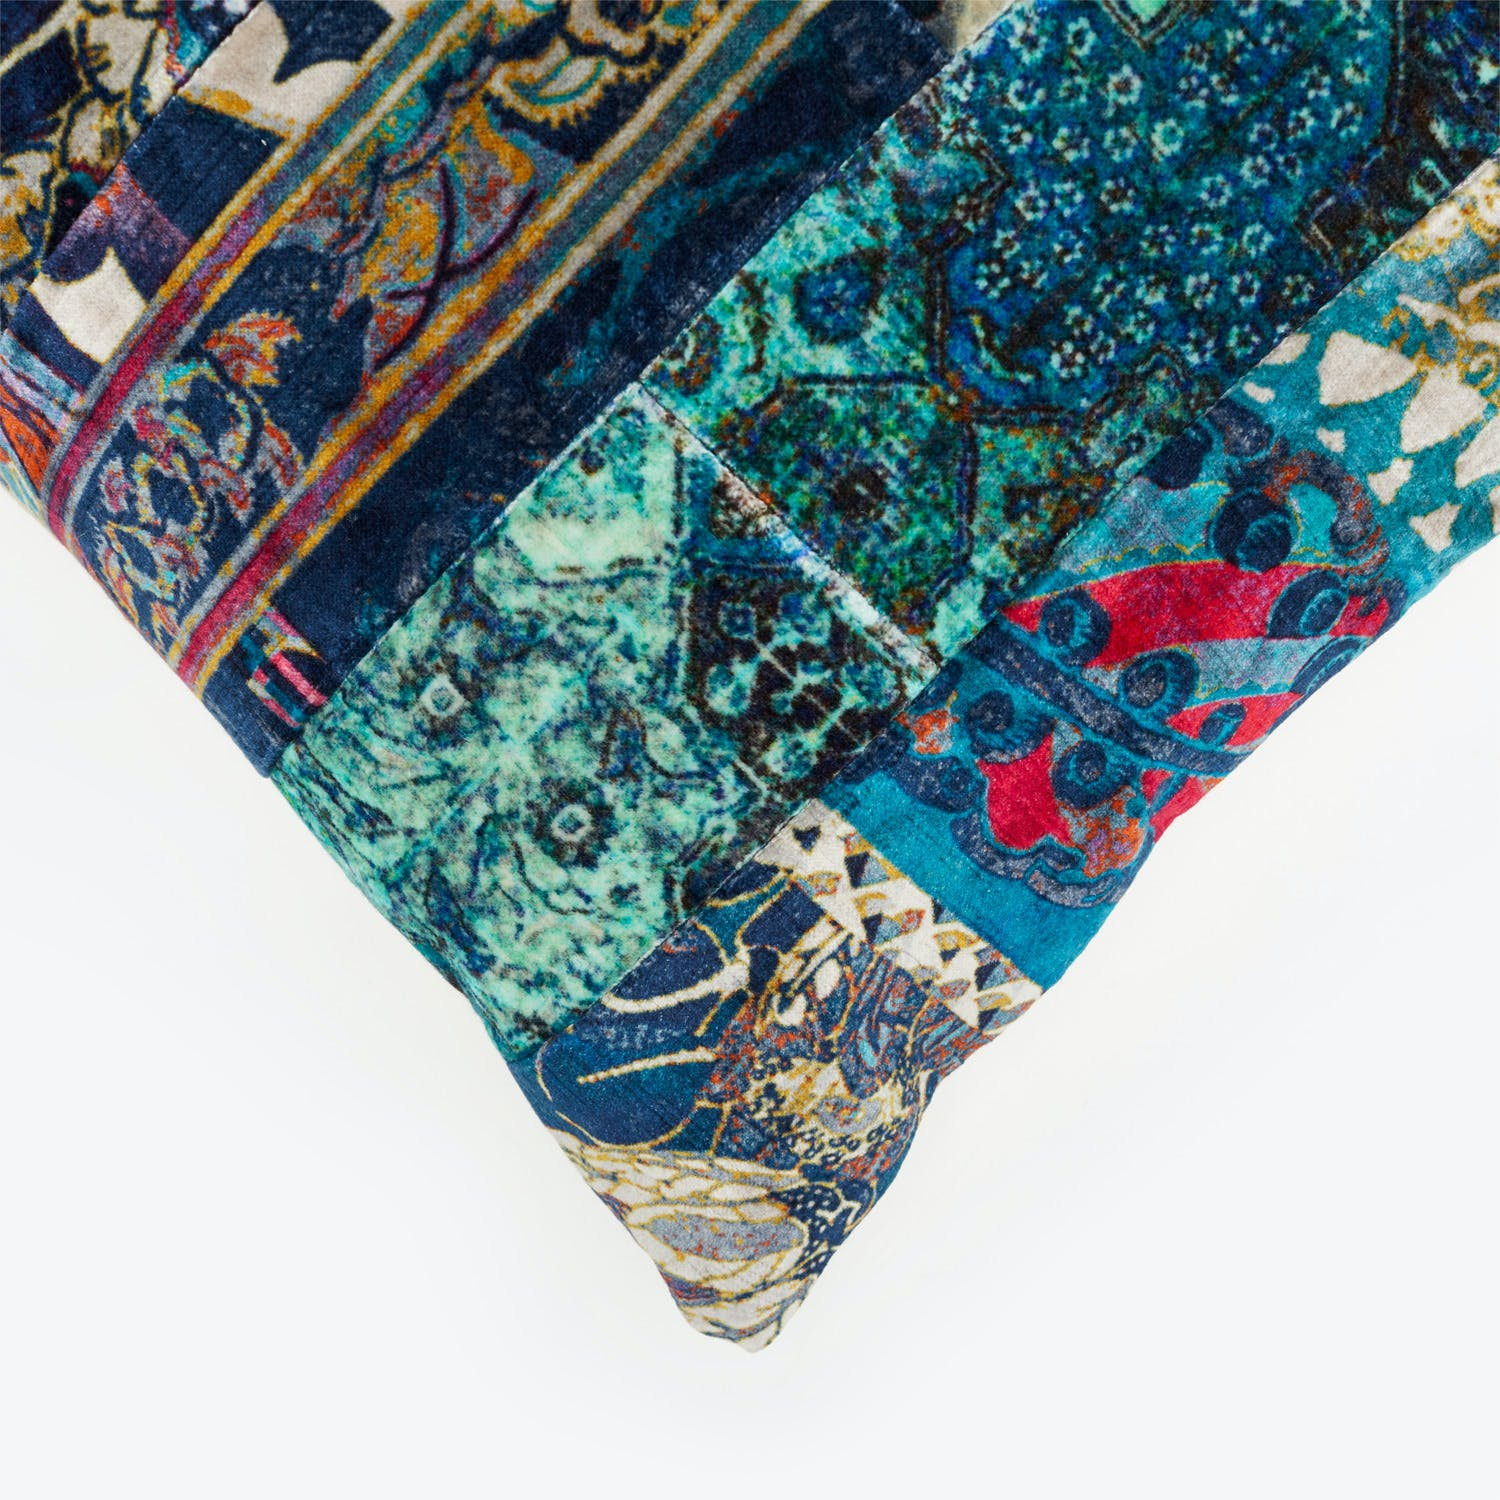 Marian Paquette One-of-a-kind Patchwork Pillow Blue / Teal